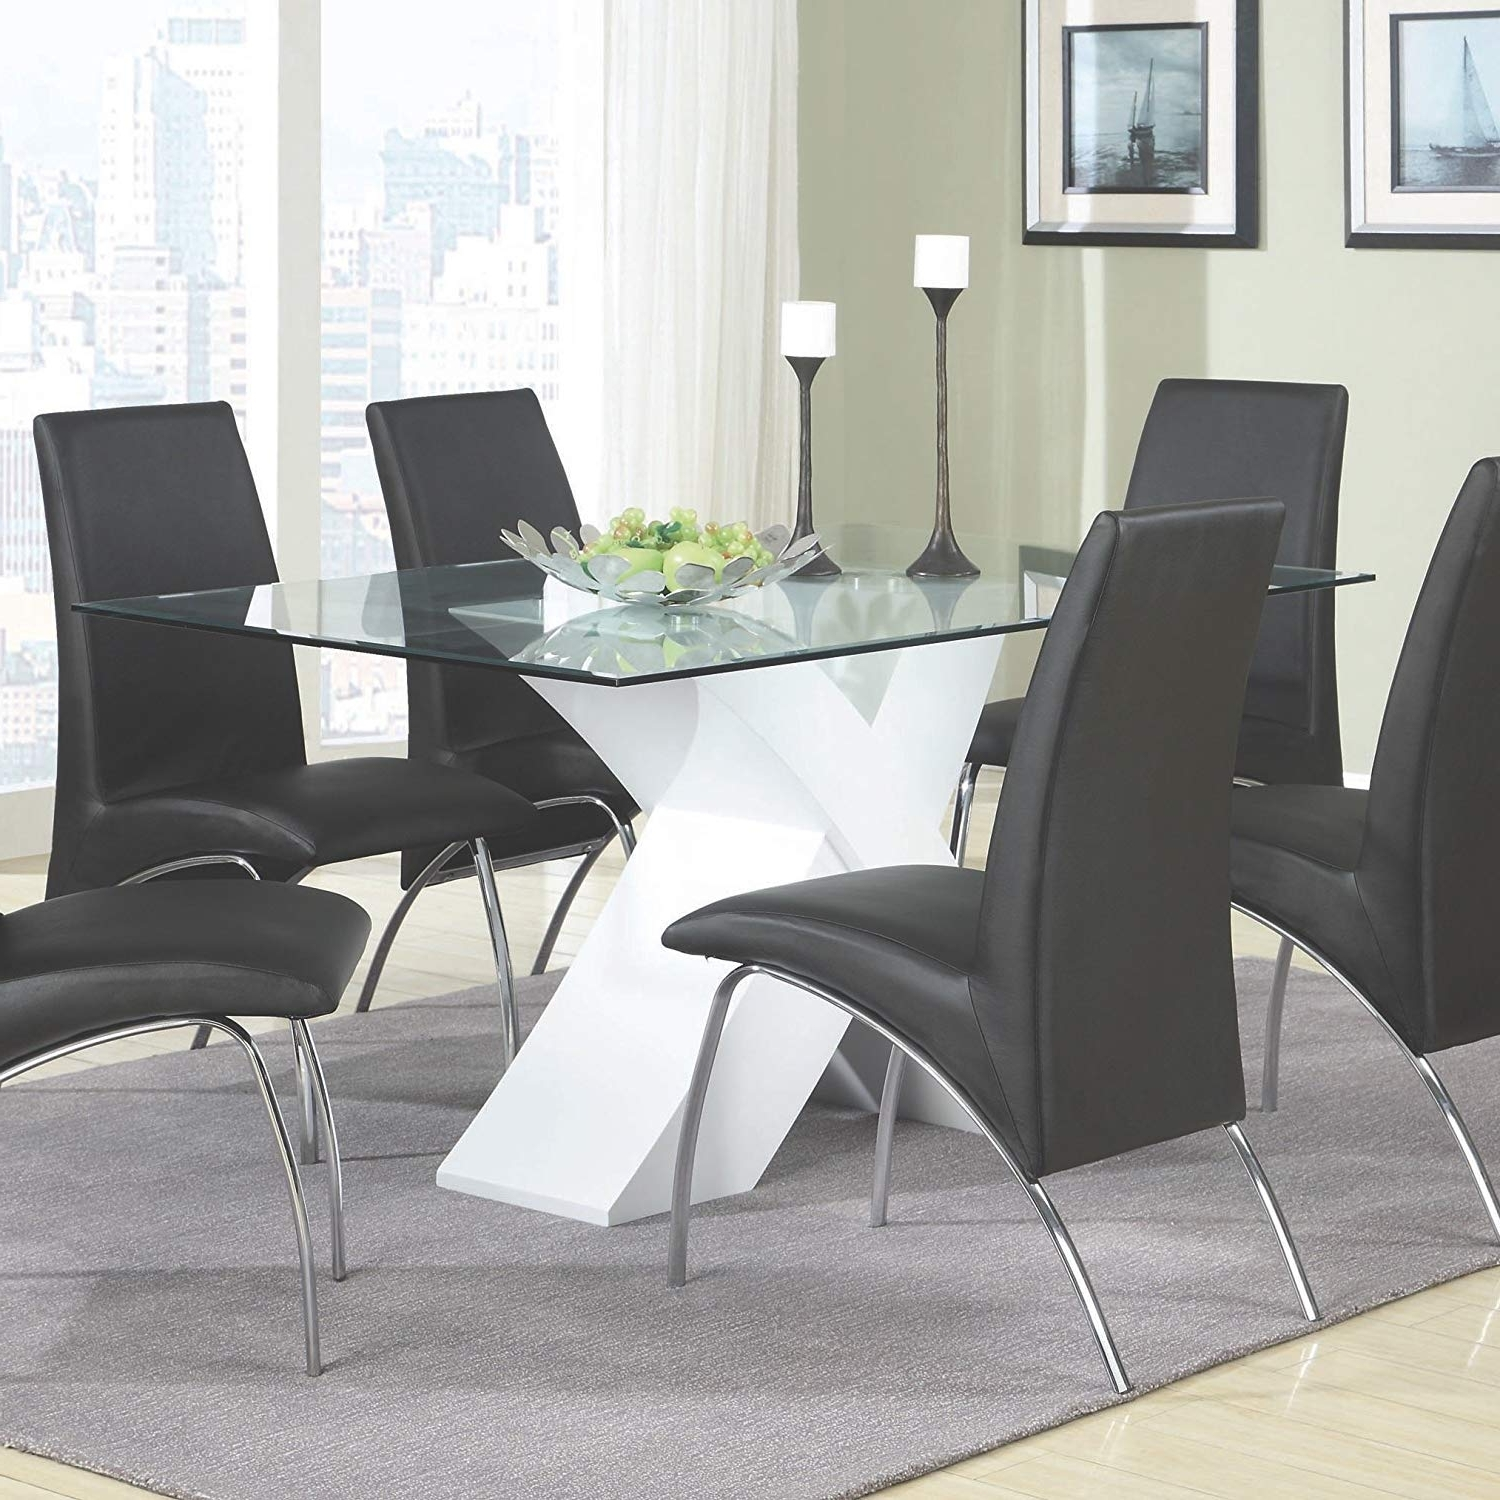 Most Recently Released Contemporary Dining Tables Sets Throughout Amazon: Coaster Home Furnishings 120821 Contemporary Glass Top (View 3 of 25)